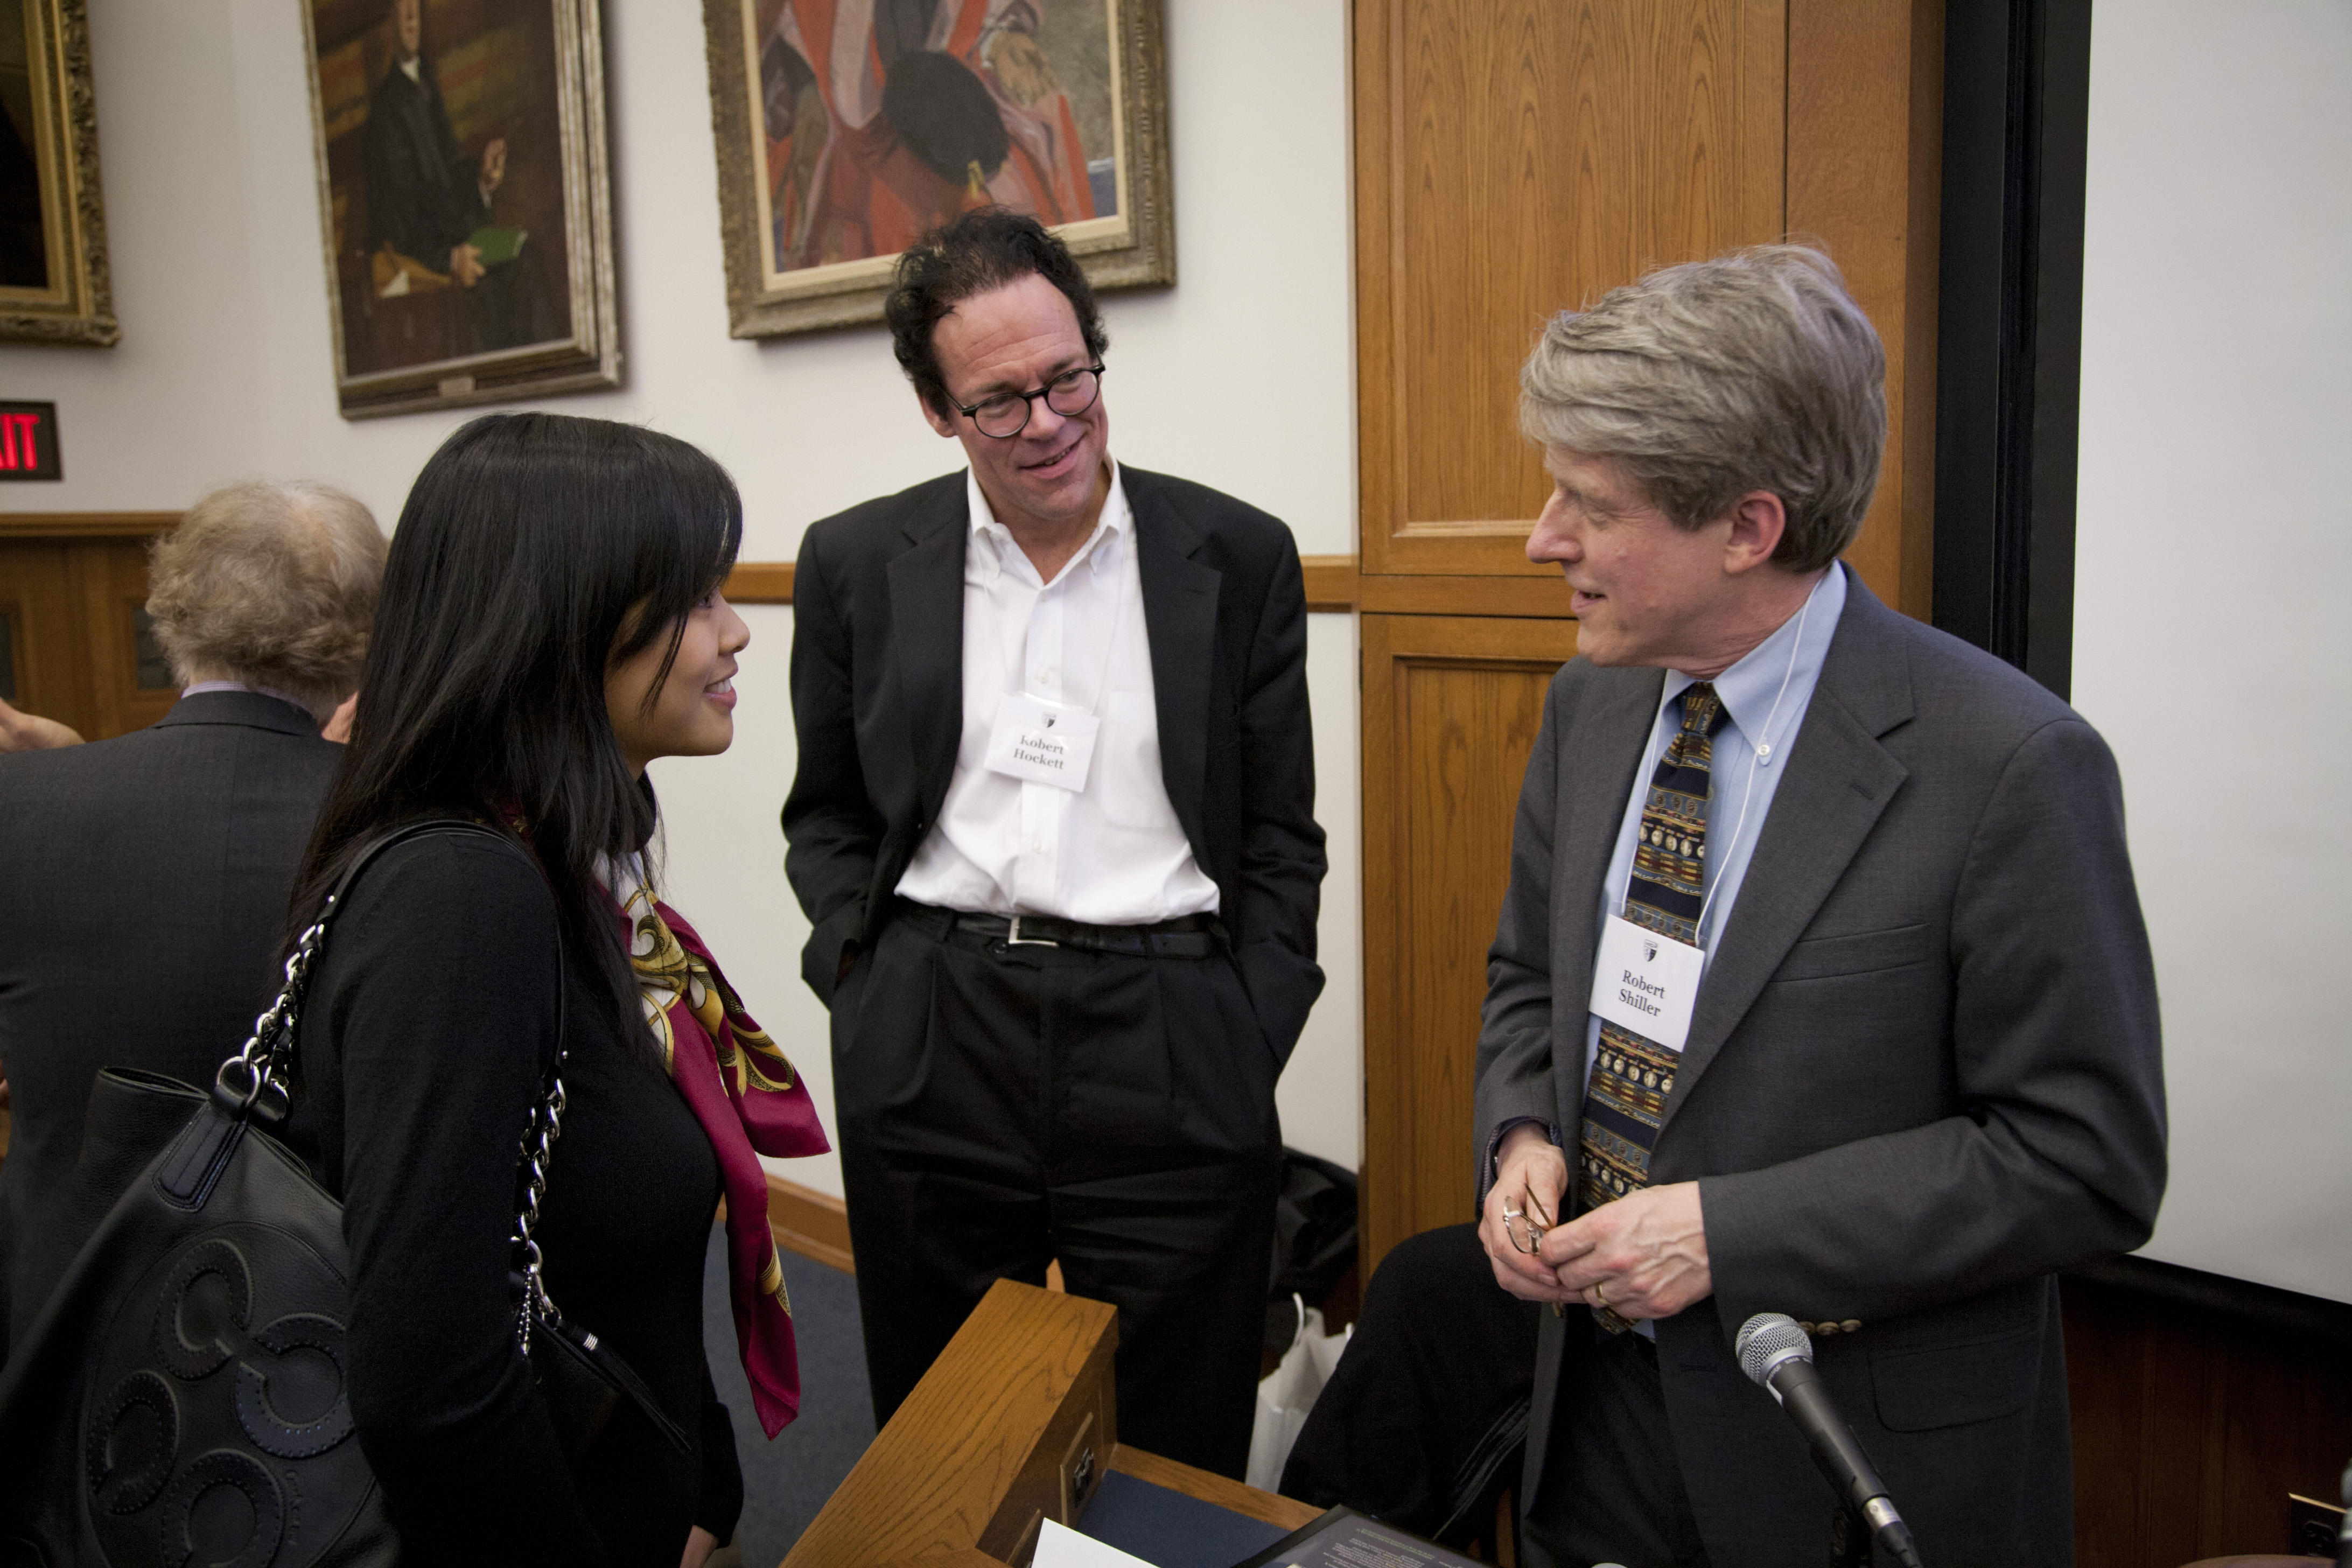 Cornell Law Prof. Robert Hockett LLM '03, JSD '06 and Yale Econ. Prof. Robert Shiller (middle and right)